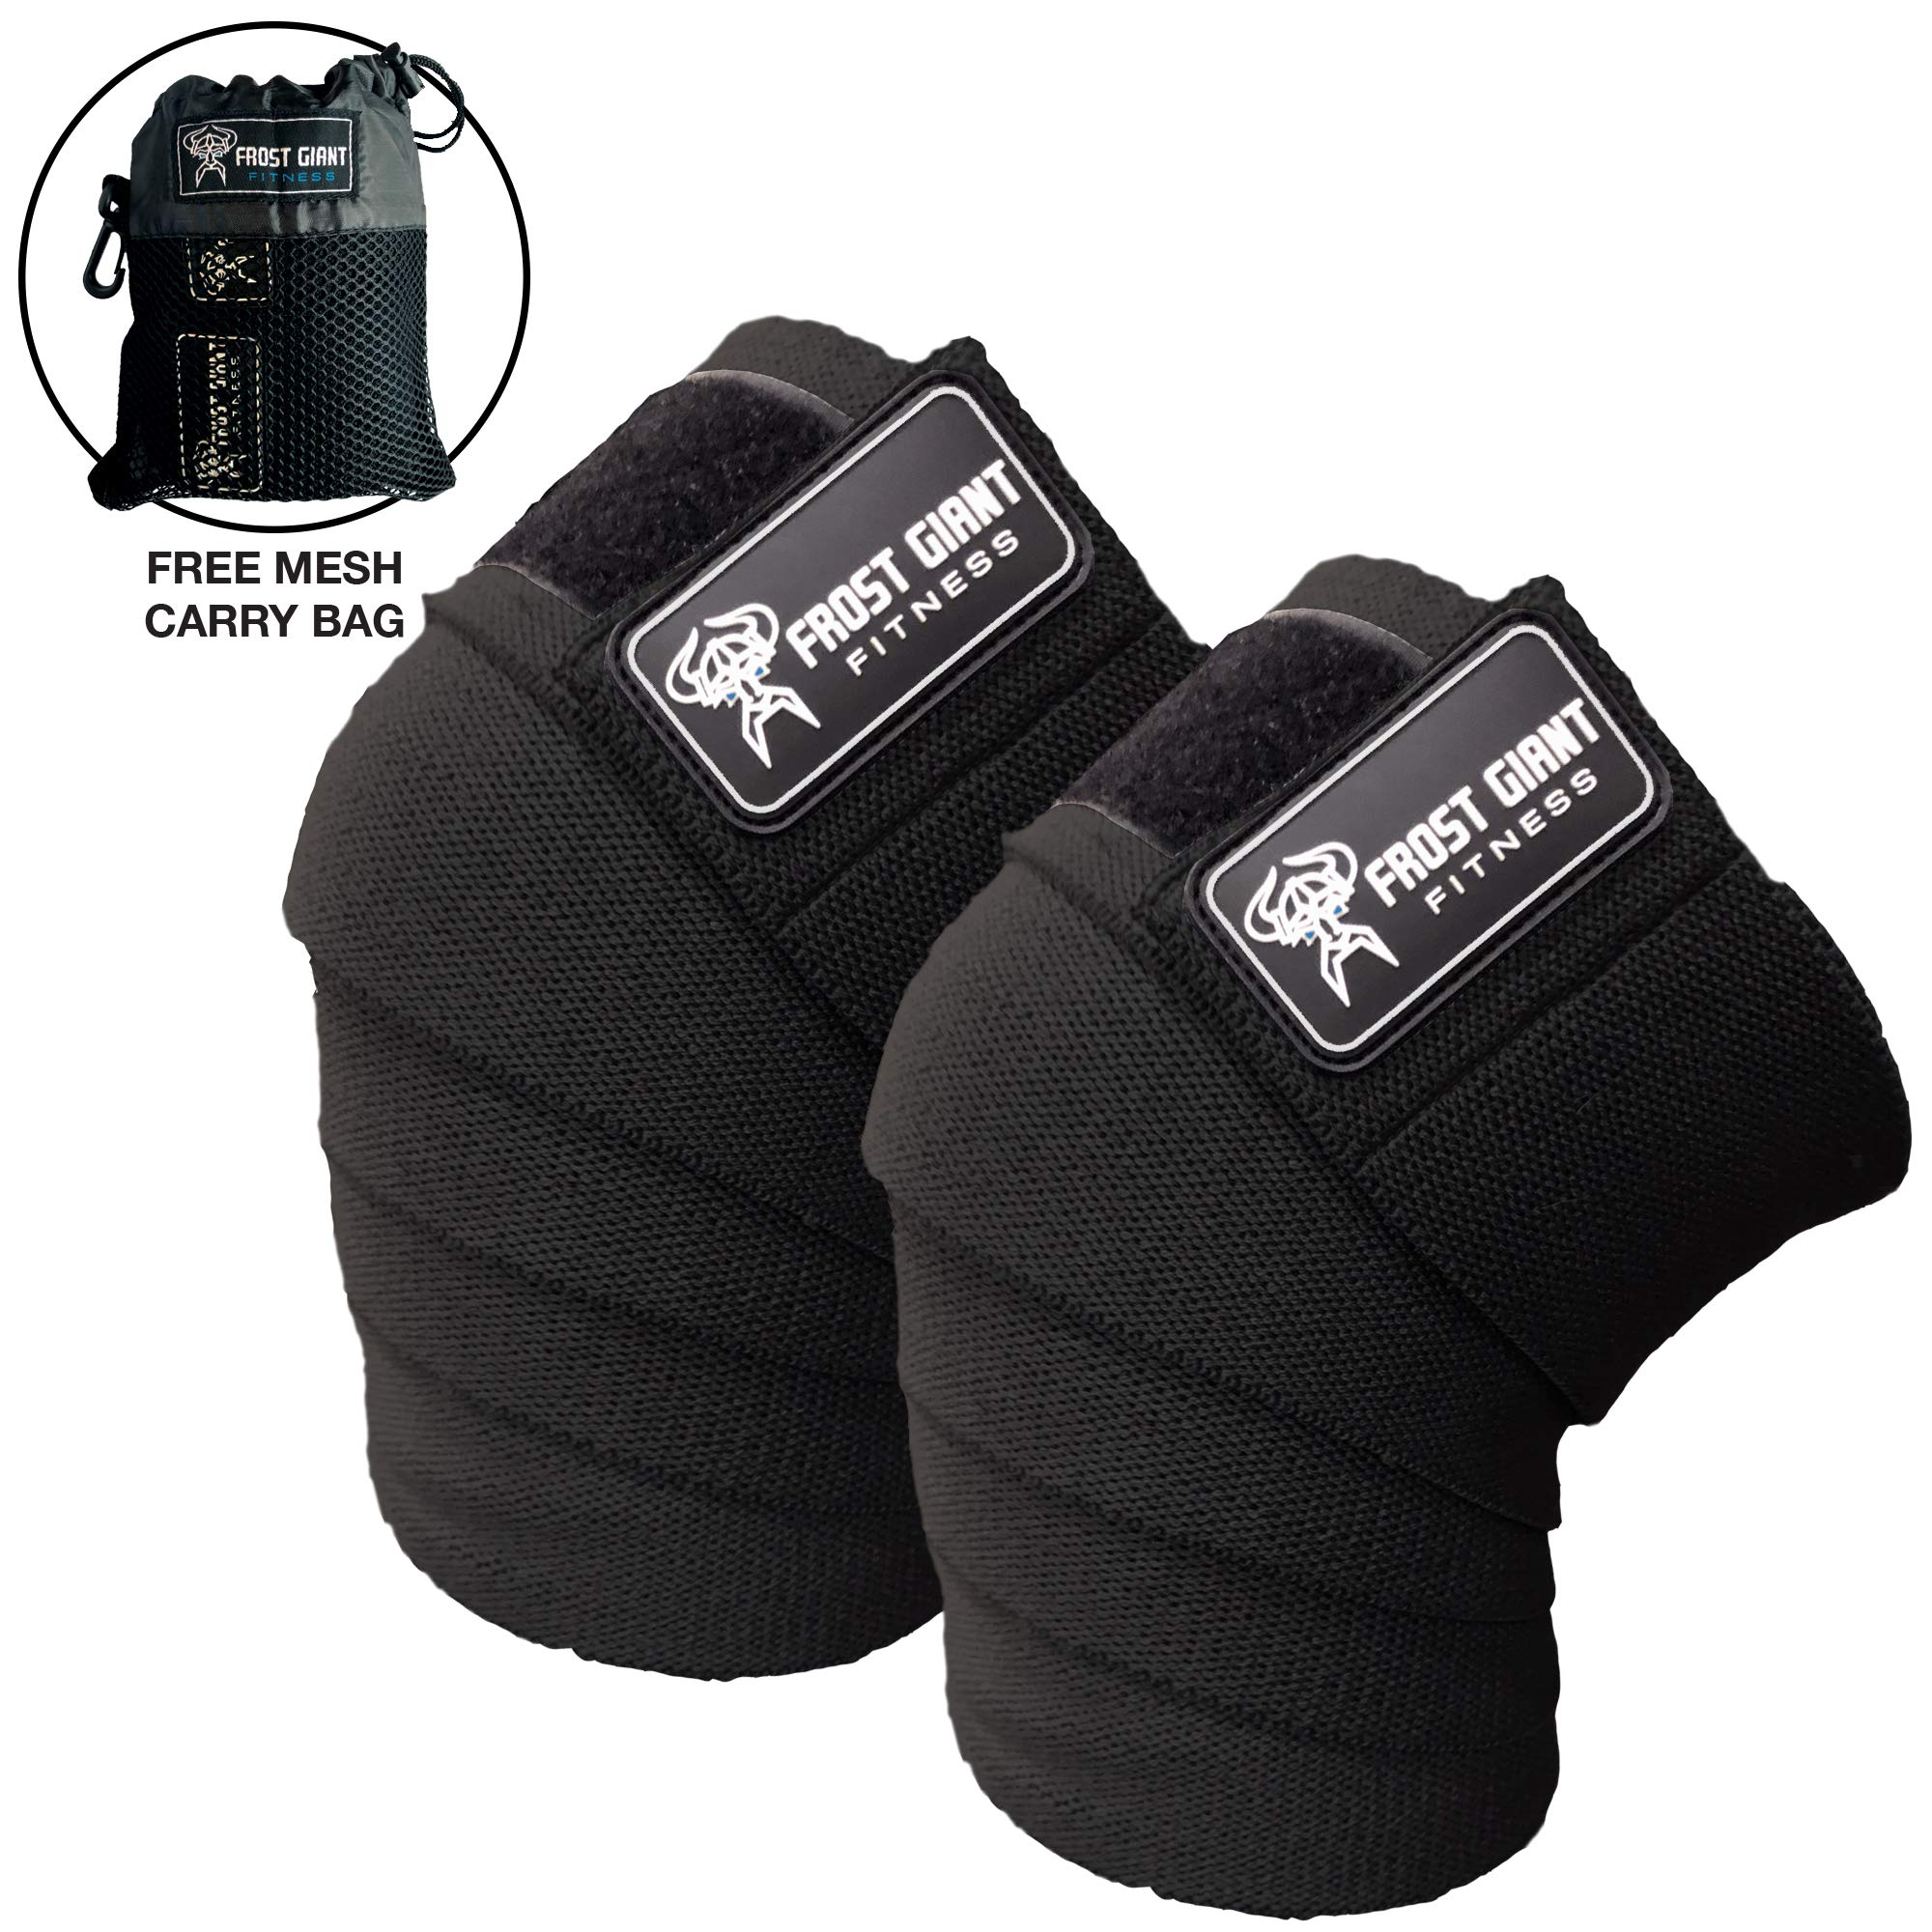 Frost Giant Fitness: 80'' Knee Wraps Set for Weightlifting, Bodybuilding, Lifting and Gym Workouts - Heavy Duty Exercising Knee Compression & Elastic Support for Men & Women. (Black)